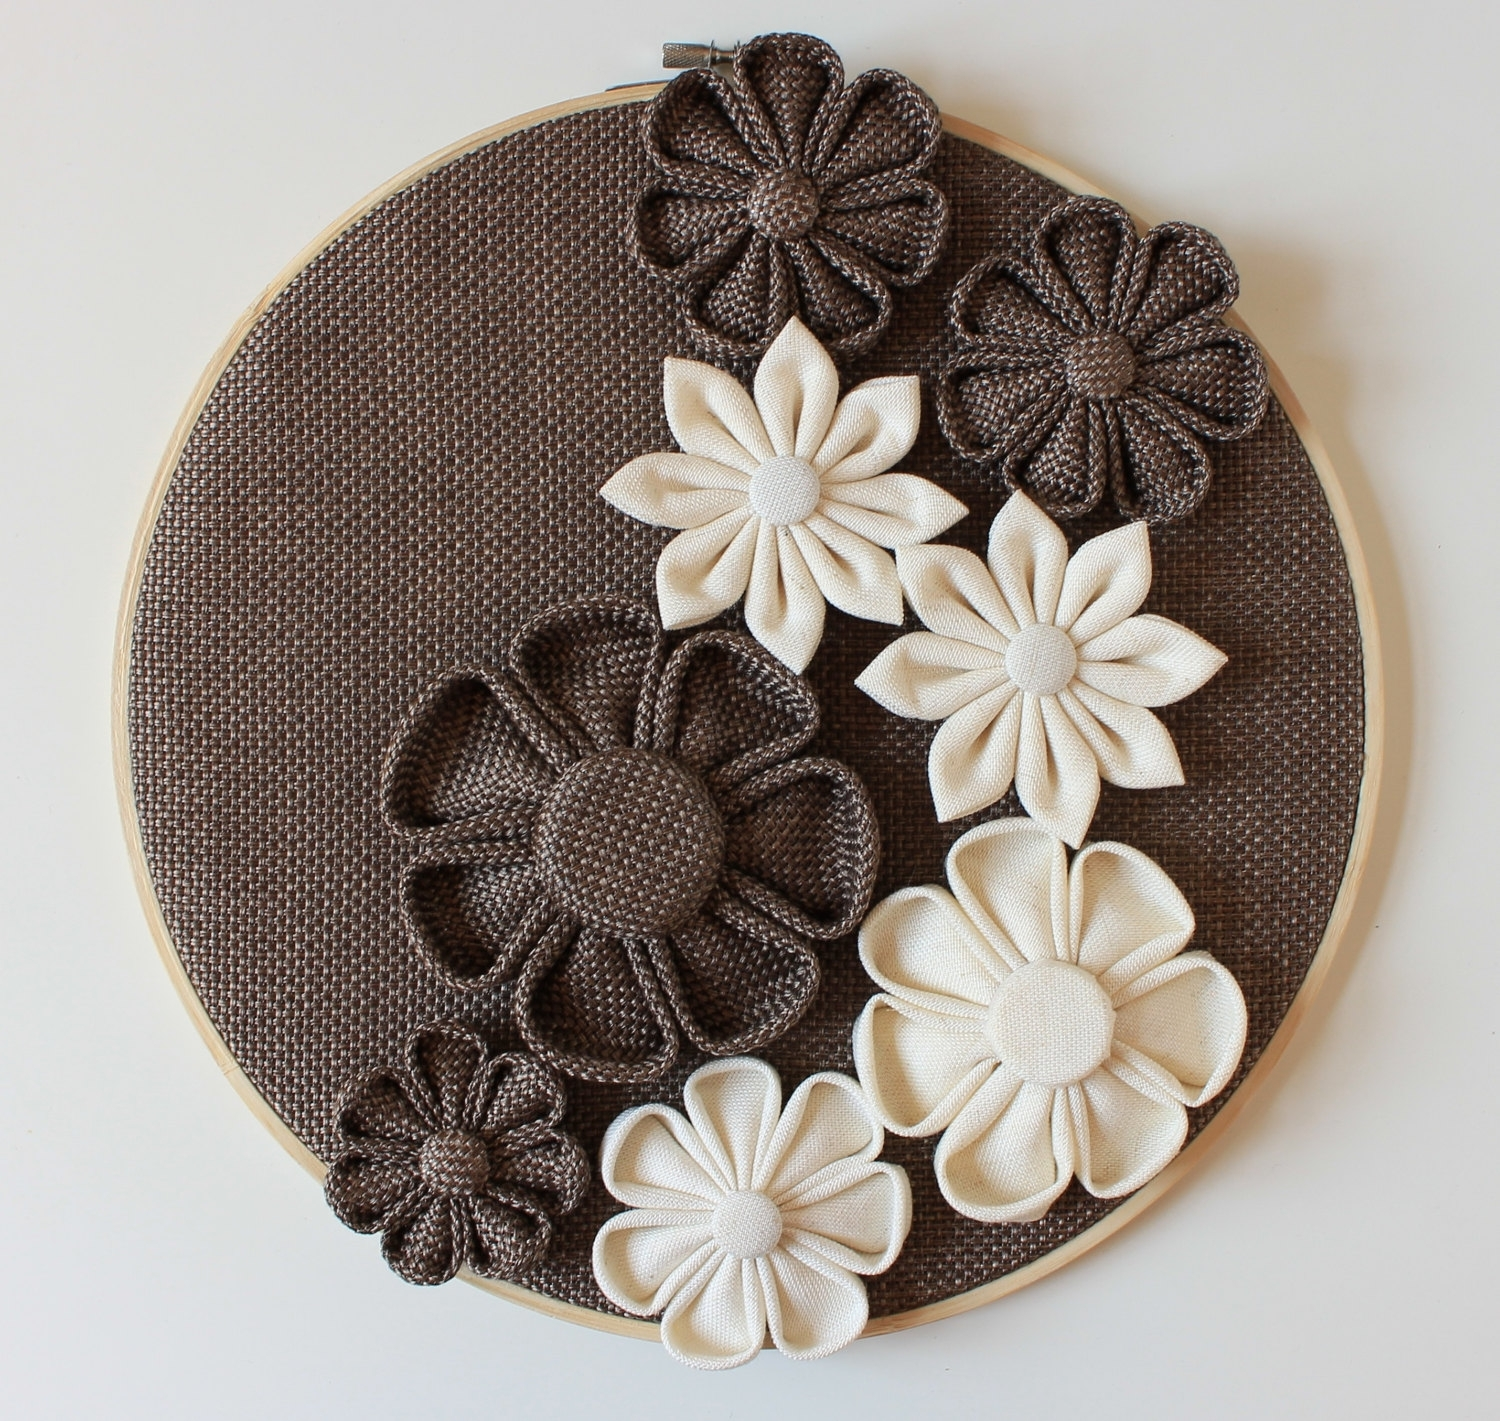 3D Wall Decor Wall Flowers Home Decor Wallneschdecoration Throughout Recent Floral Fabric Wall Art (View 3 of 15)